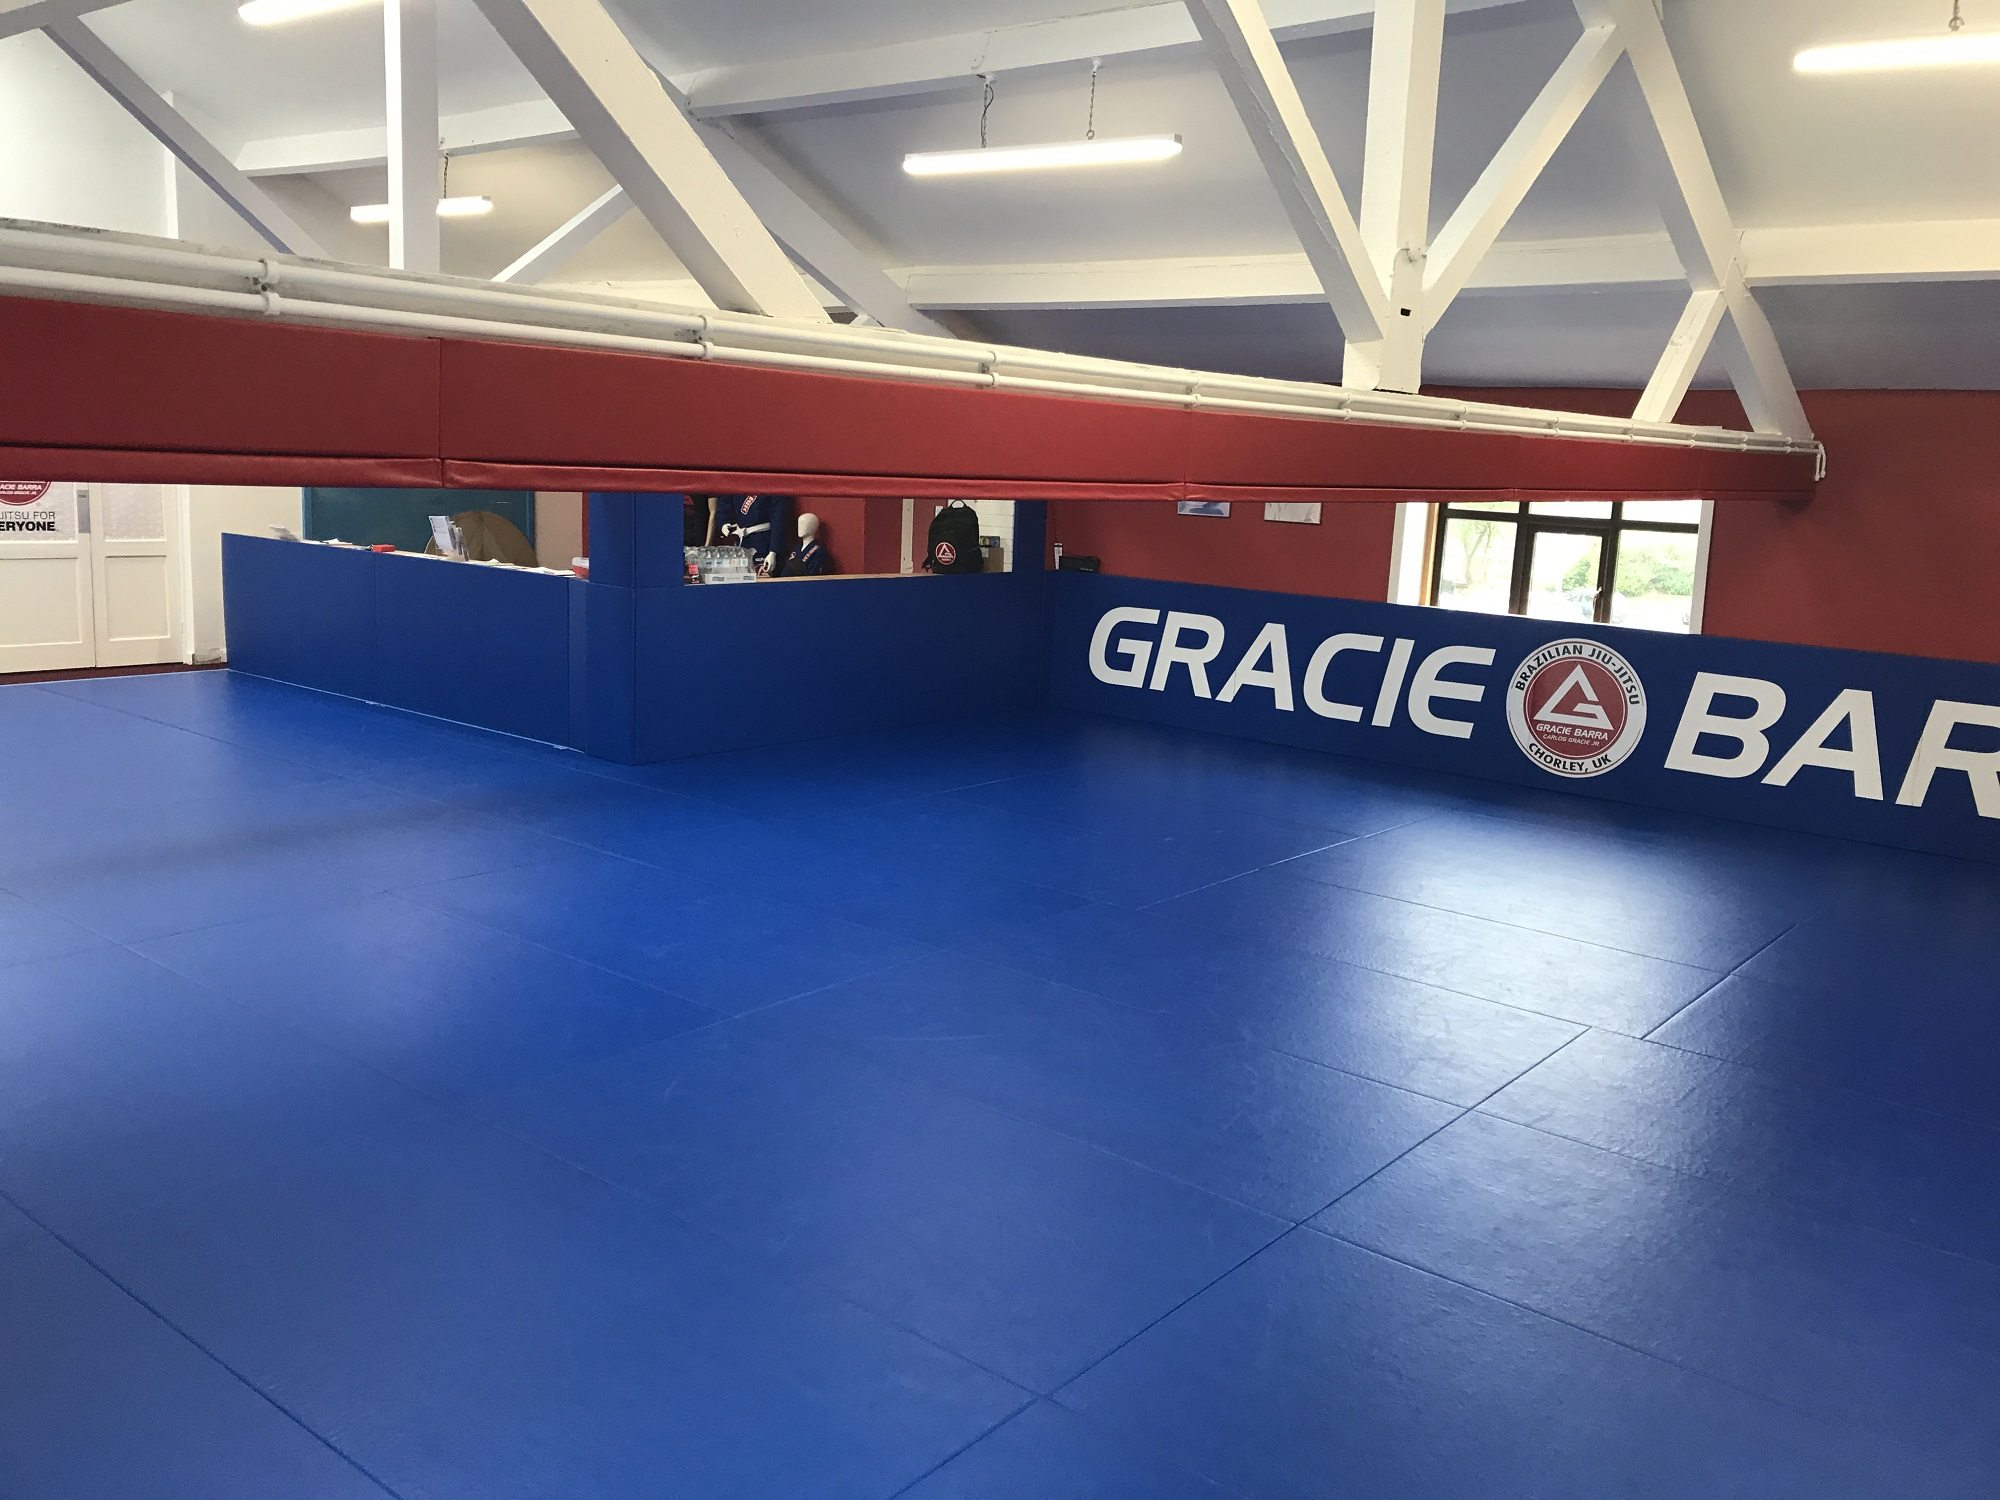 Gracie Barra Matted Gym